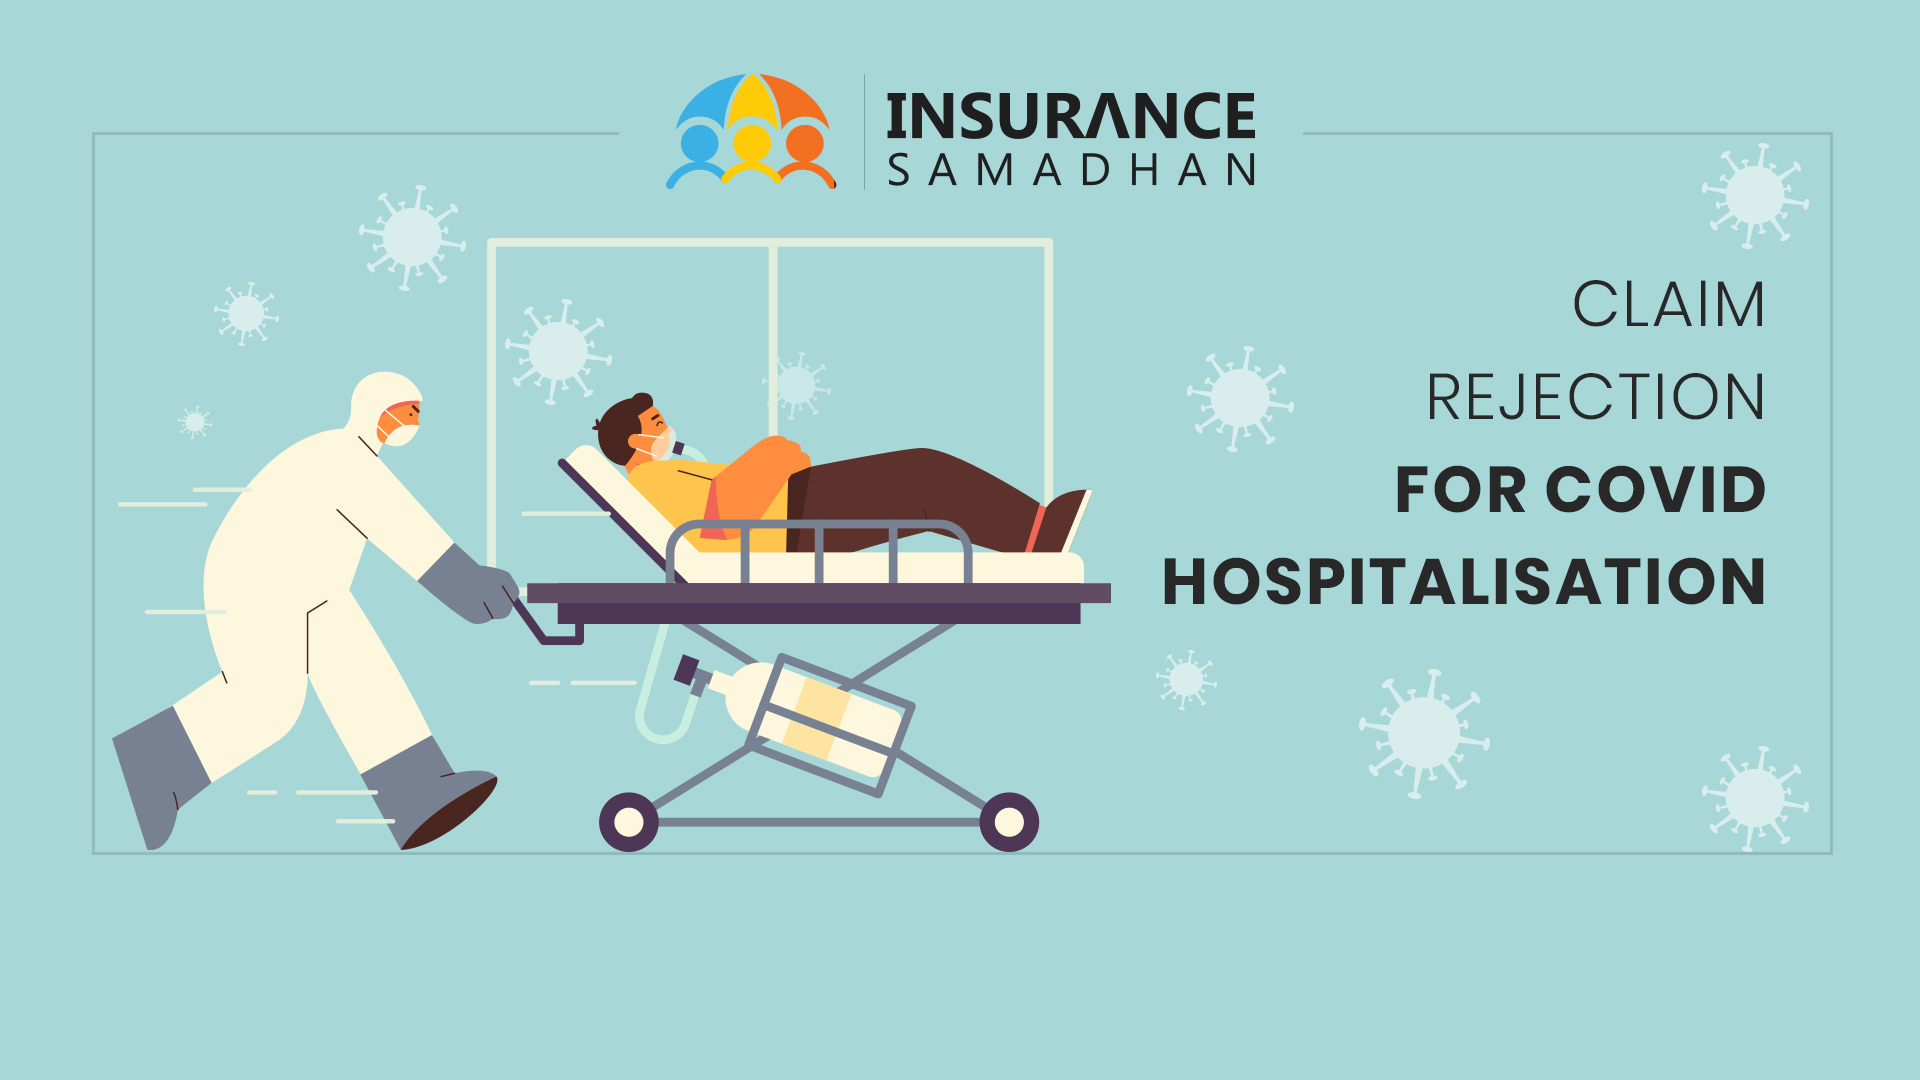 Are you Suffering from Insurance Claim Rejection for Covid-19 Hospitalization? Know What You Can Do with Your Insurance?